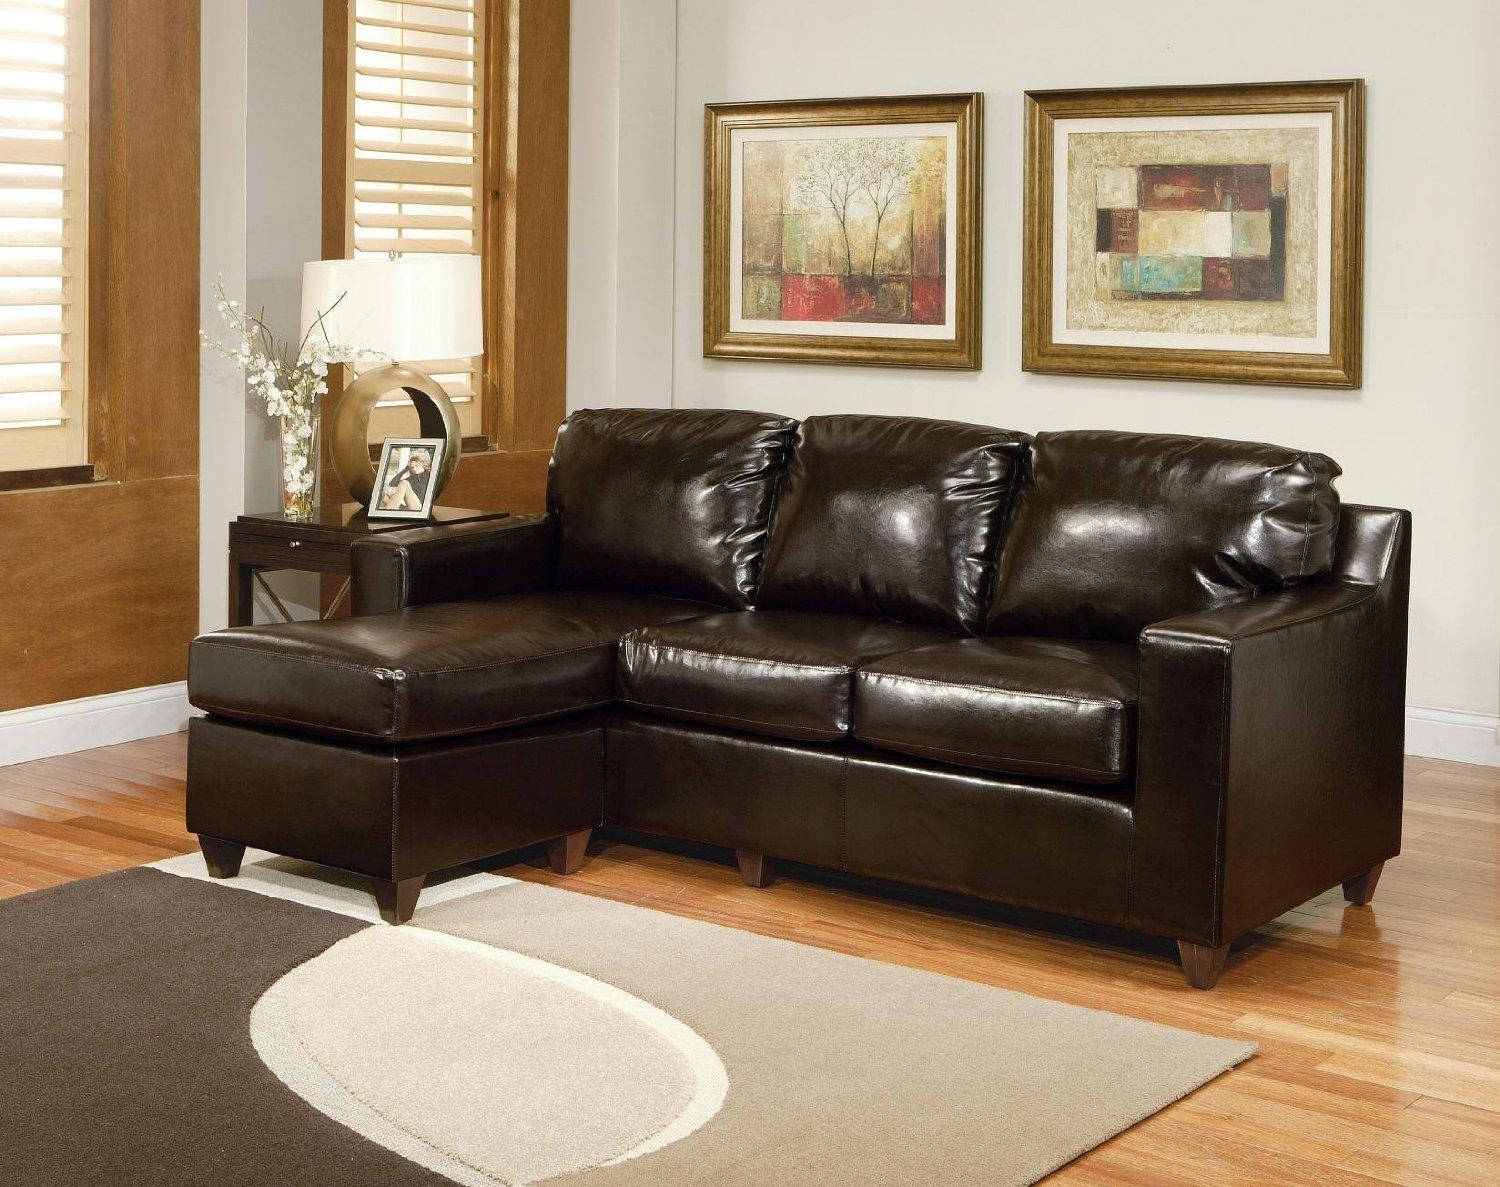 Small Sectional Sofa With Chaise Lounge | Sofa Gallery | Kengire Within Small Sofas With Chaise Lounge (Image 13 of 20)